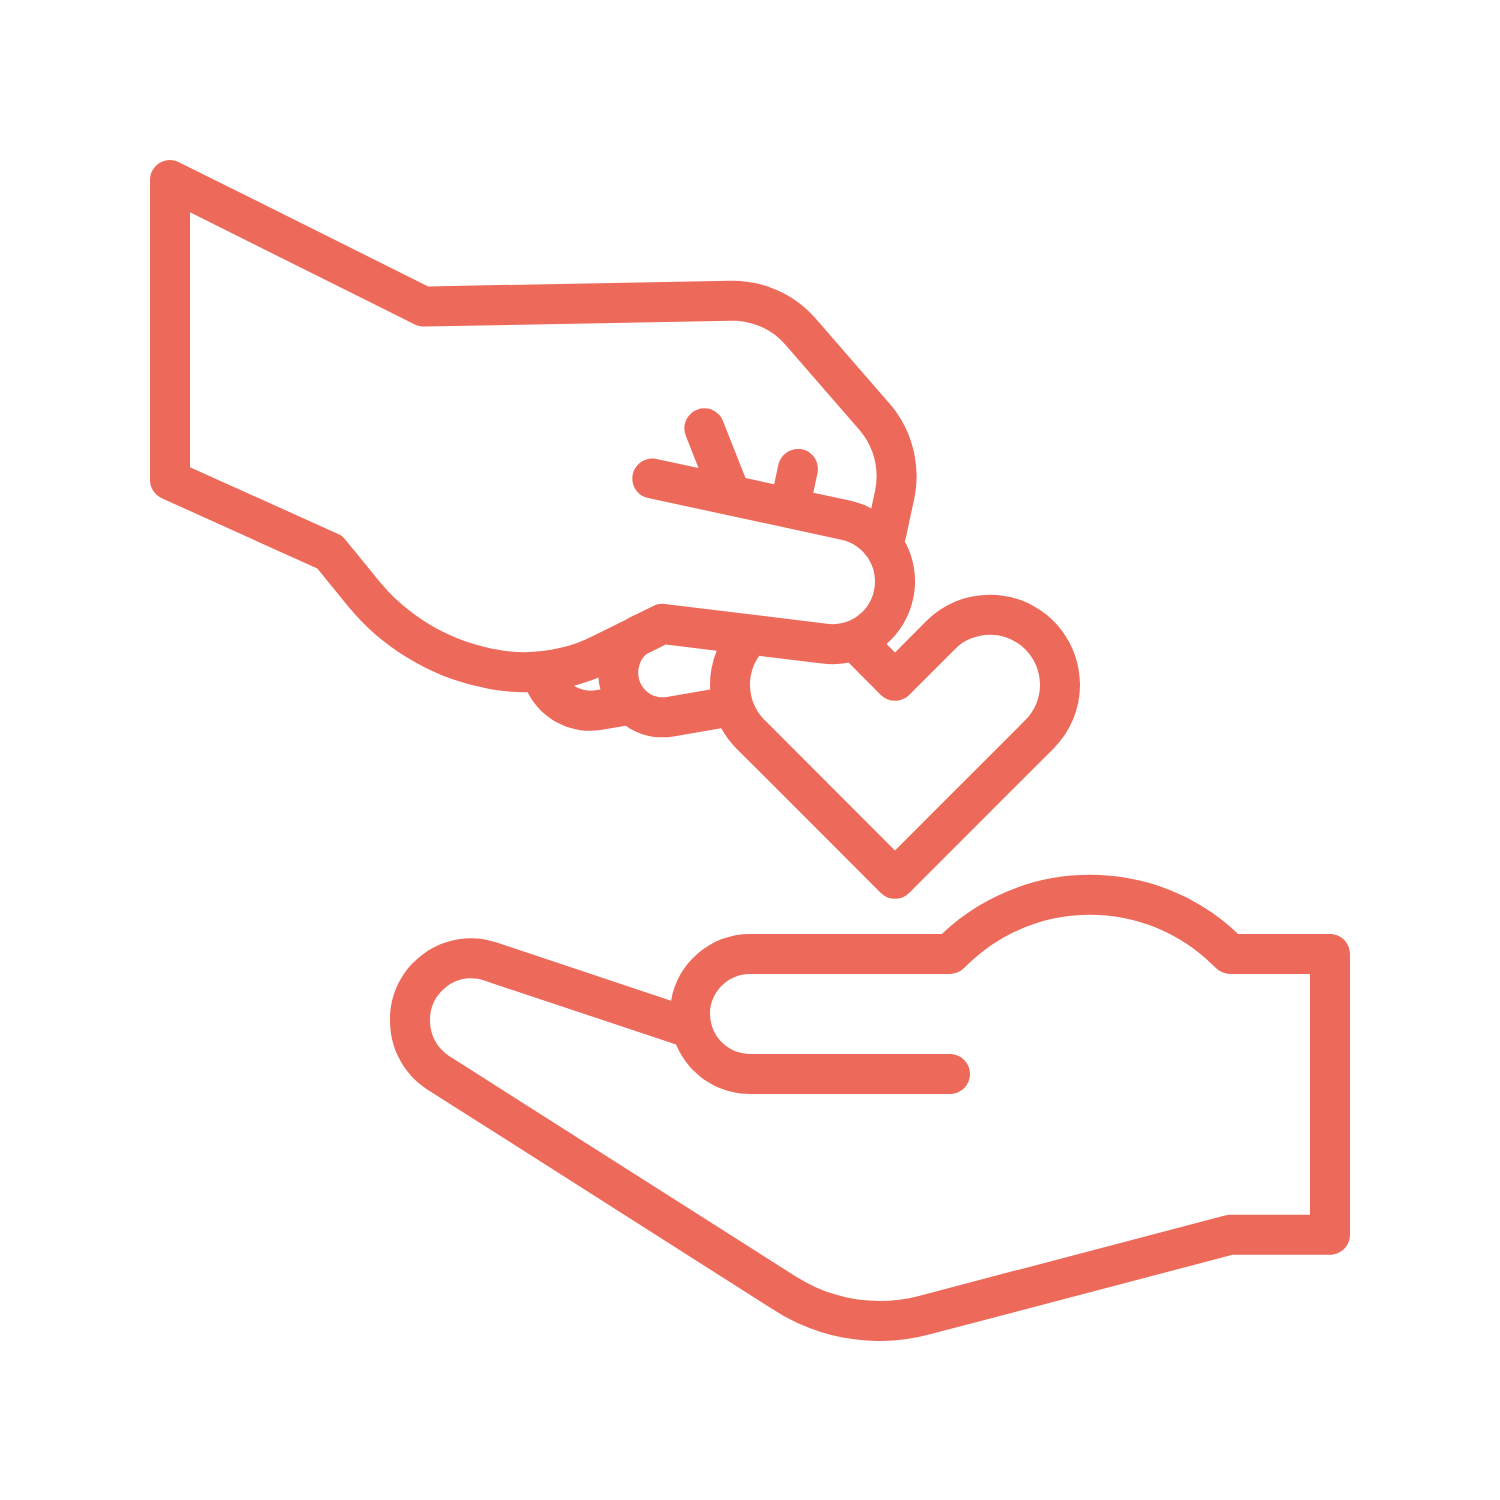 make a difference icon